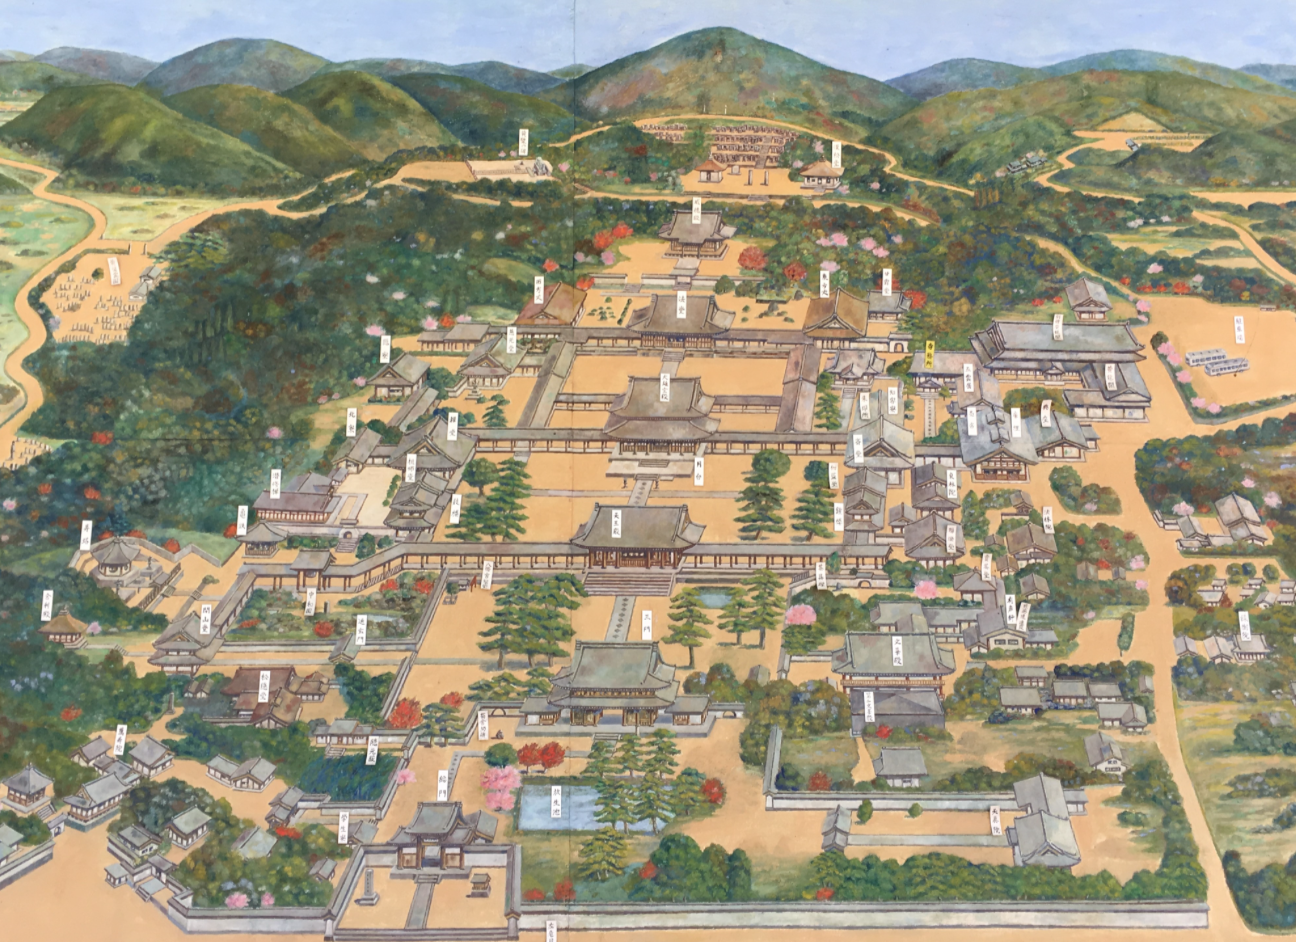 The layout of the Manpuku-ji temple complex.